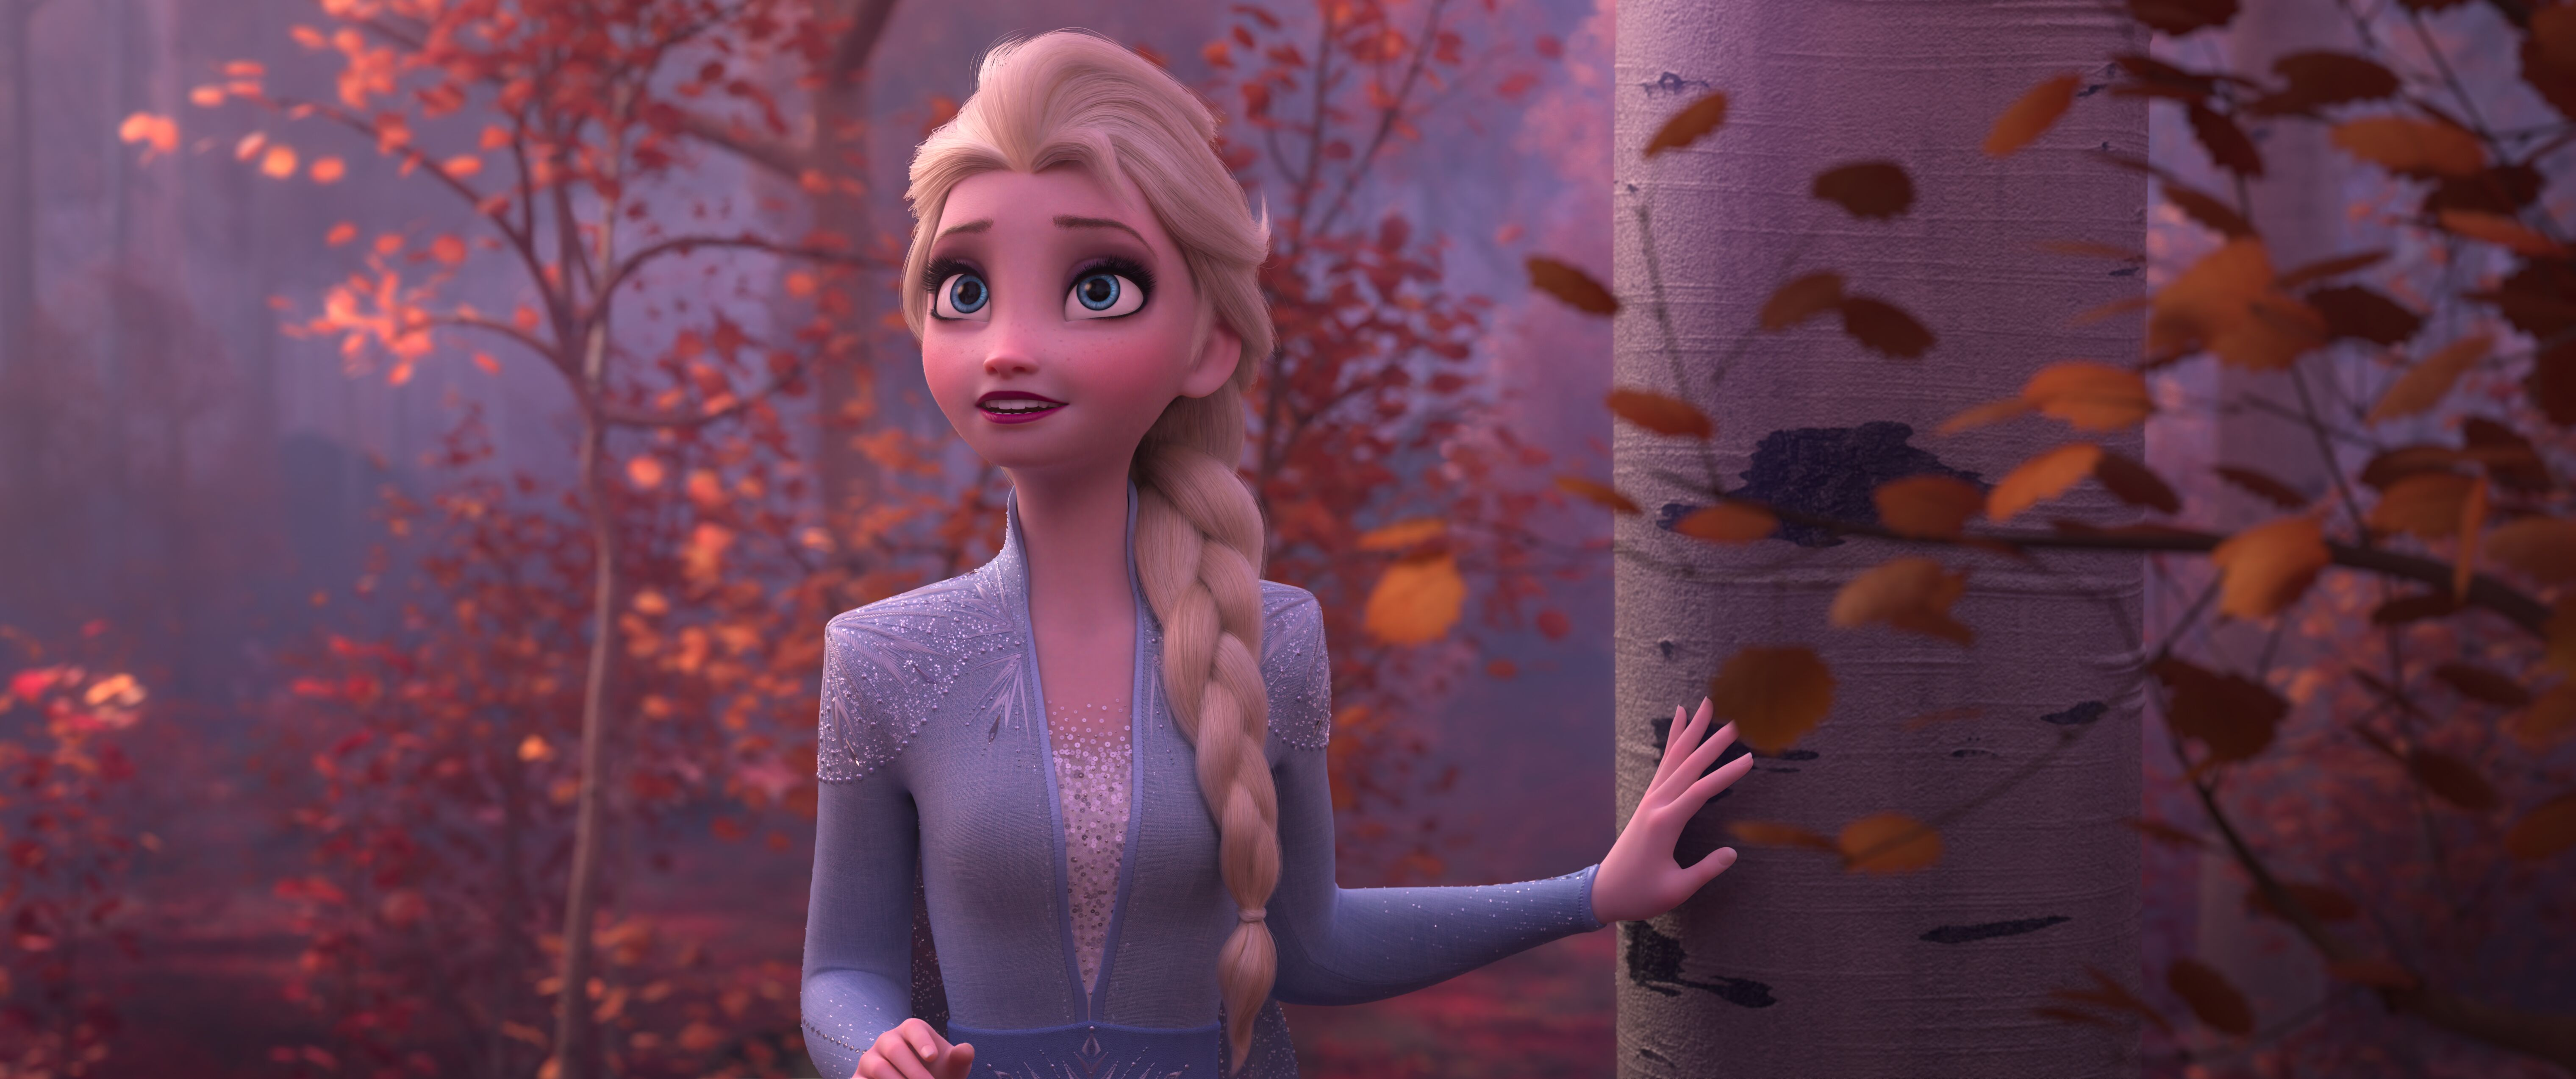 Frozen 2's 'Into the Unknown' deserves to be the new power ballad of the franchise